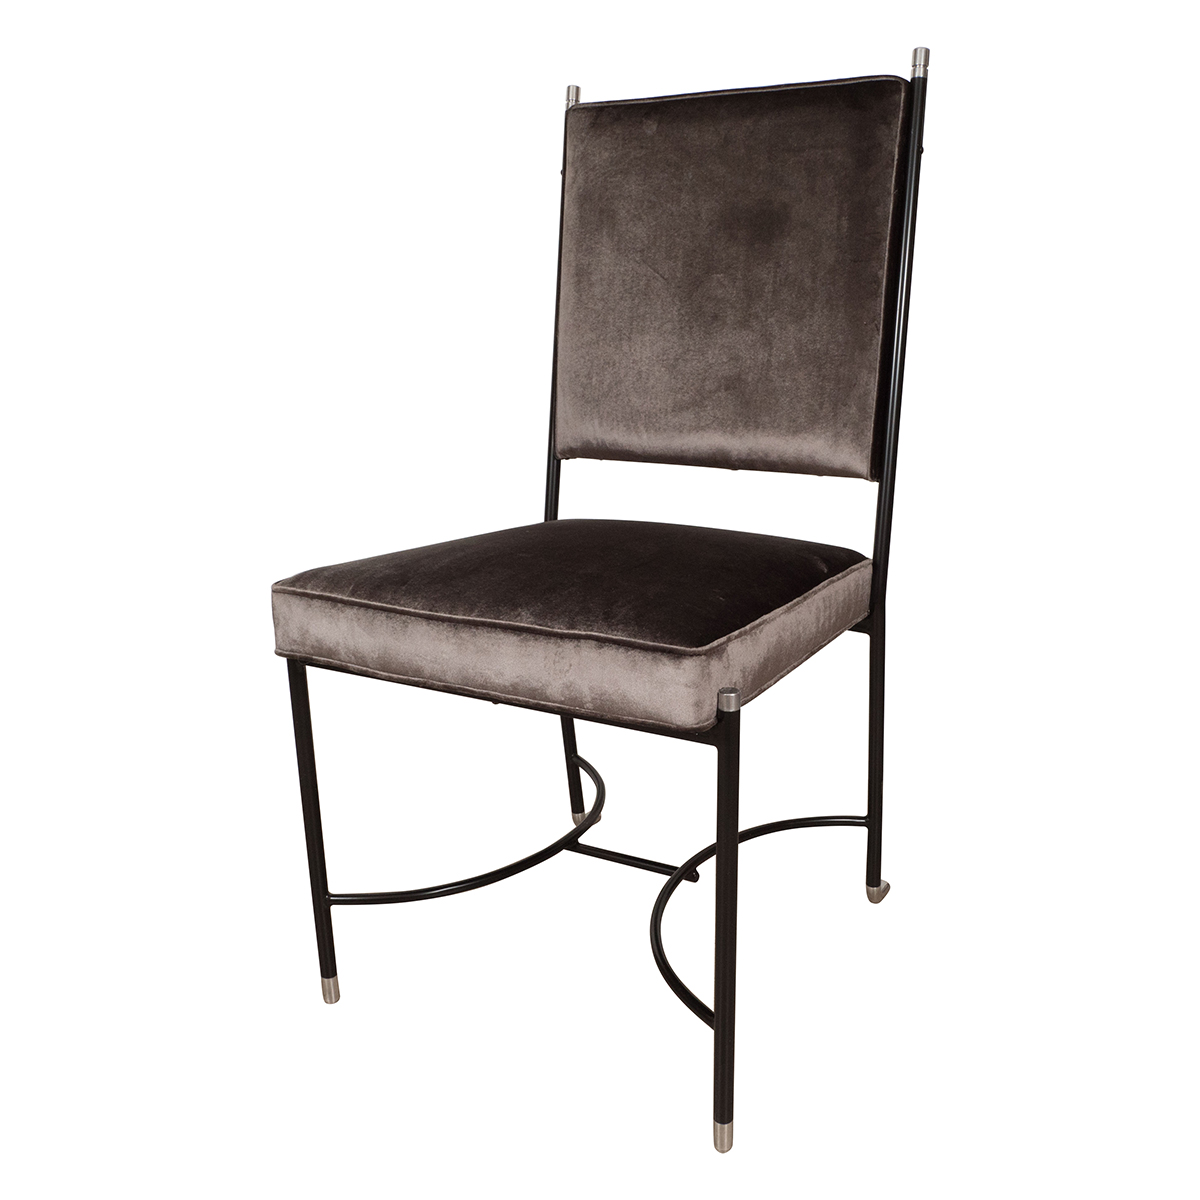 Upholstered Desk Chair With Stylized Blackened Frame